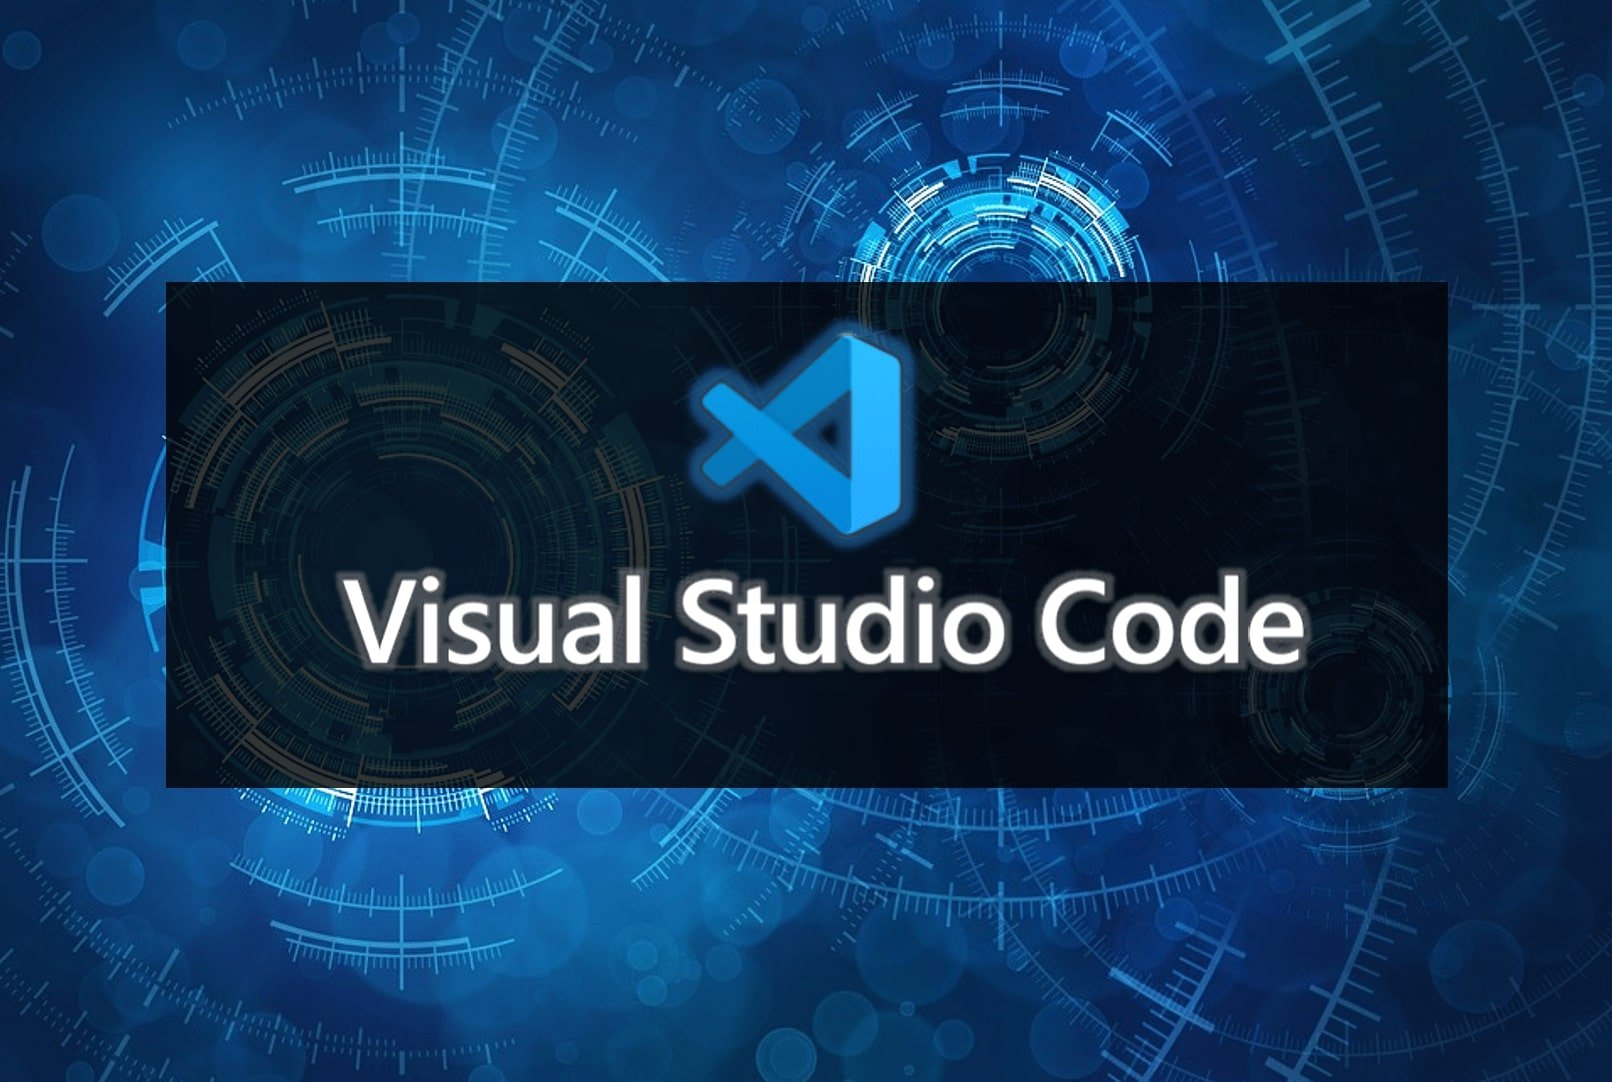 vscode_background.jpg